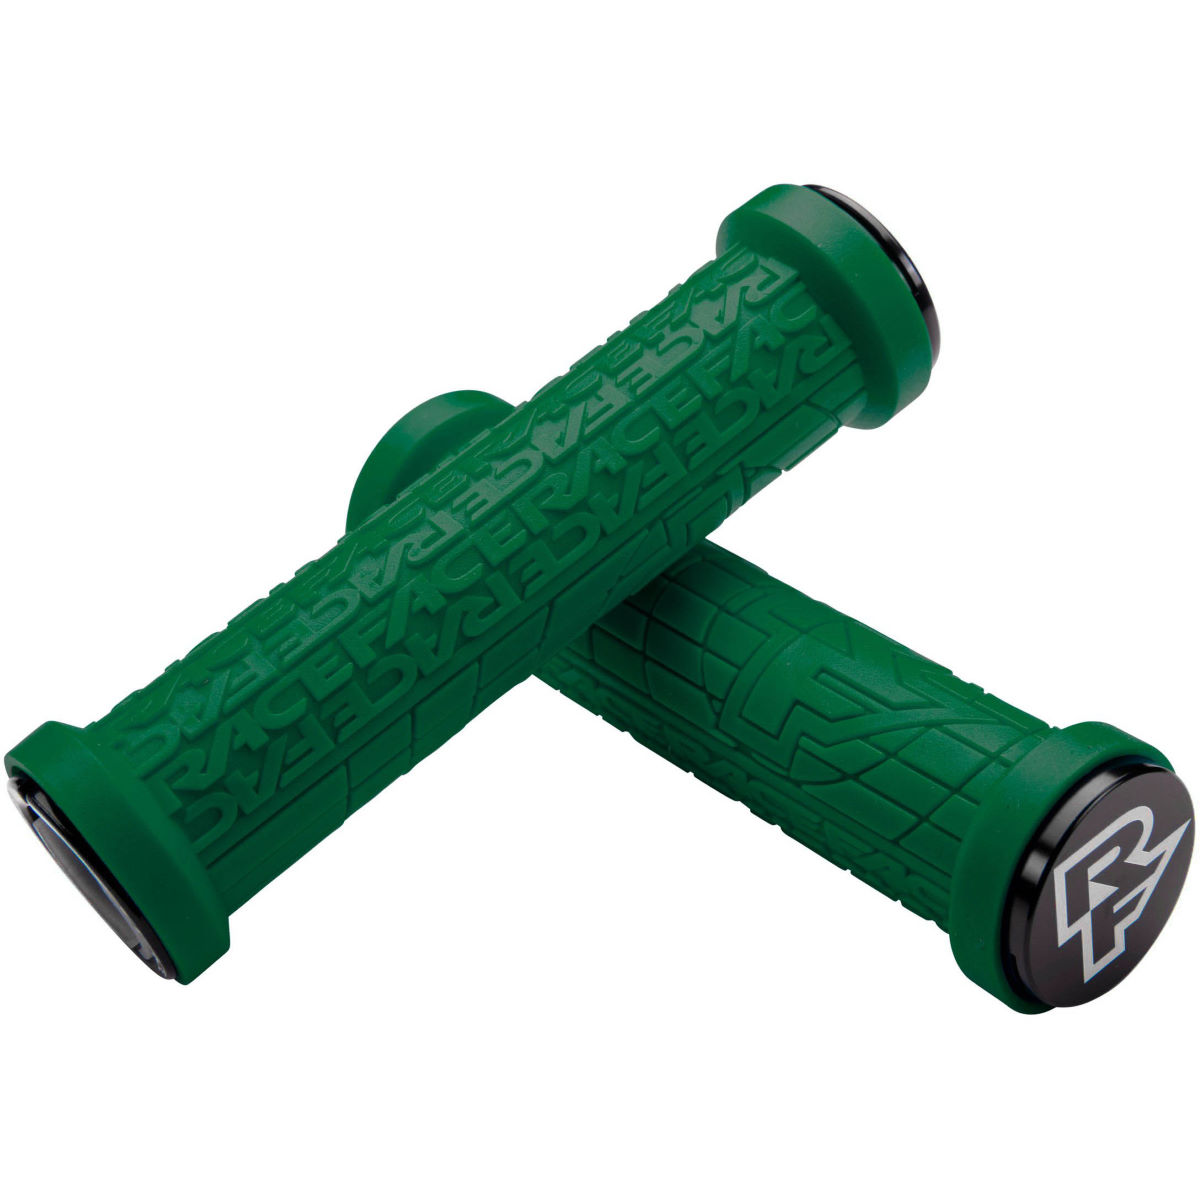 Race Face Grippler Limited Edition Lock-on Grips - 33mm Forest Green